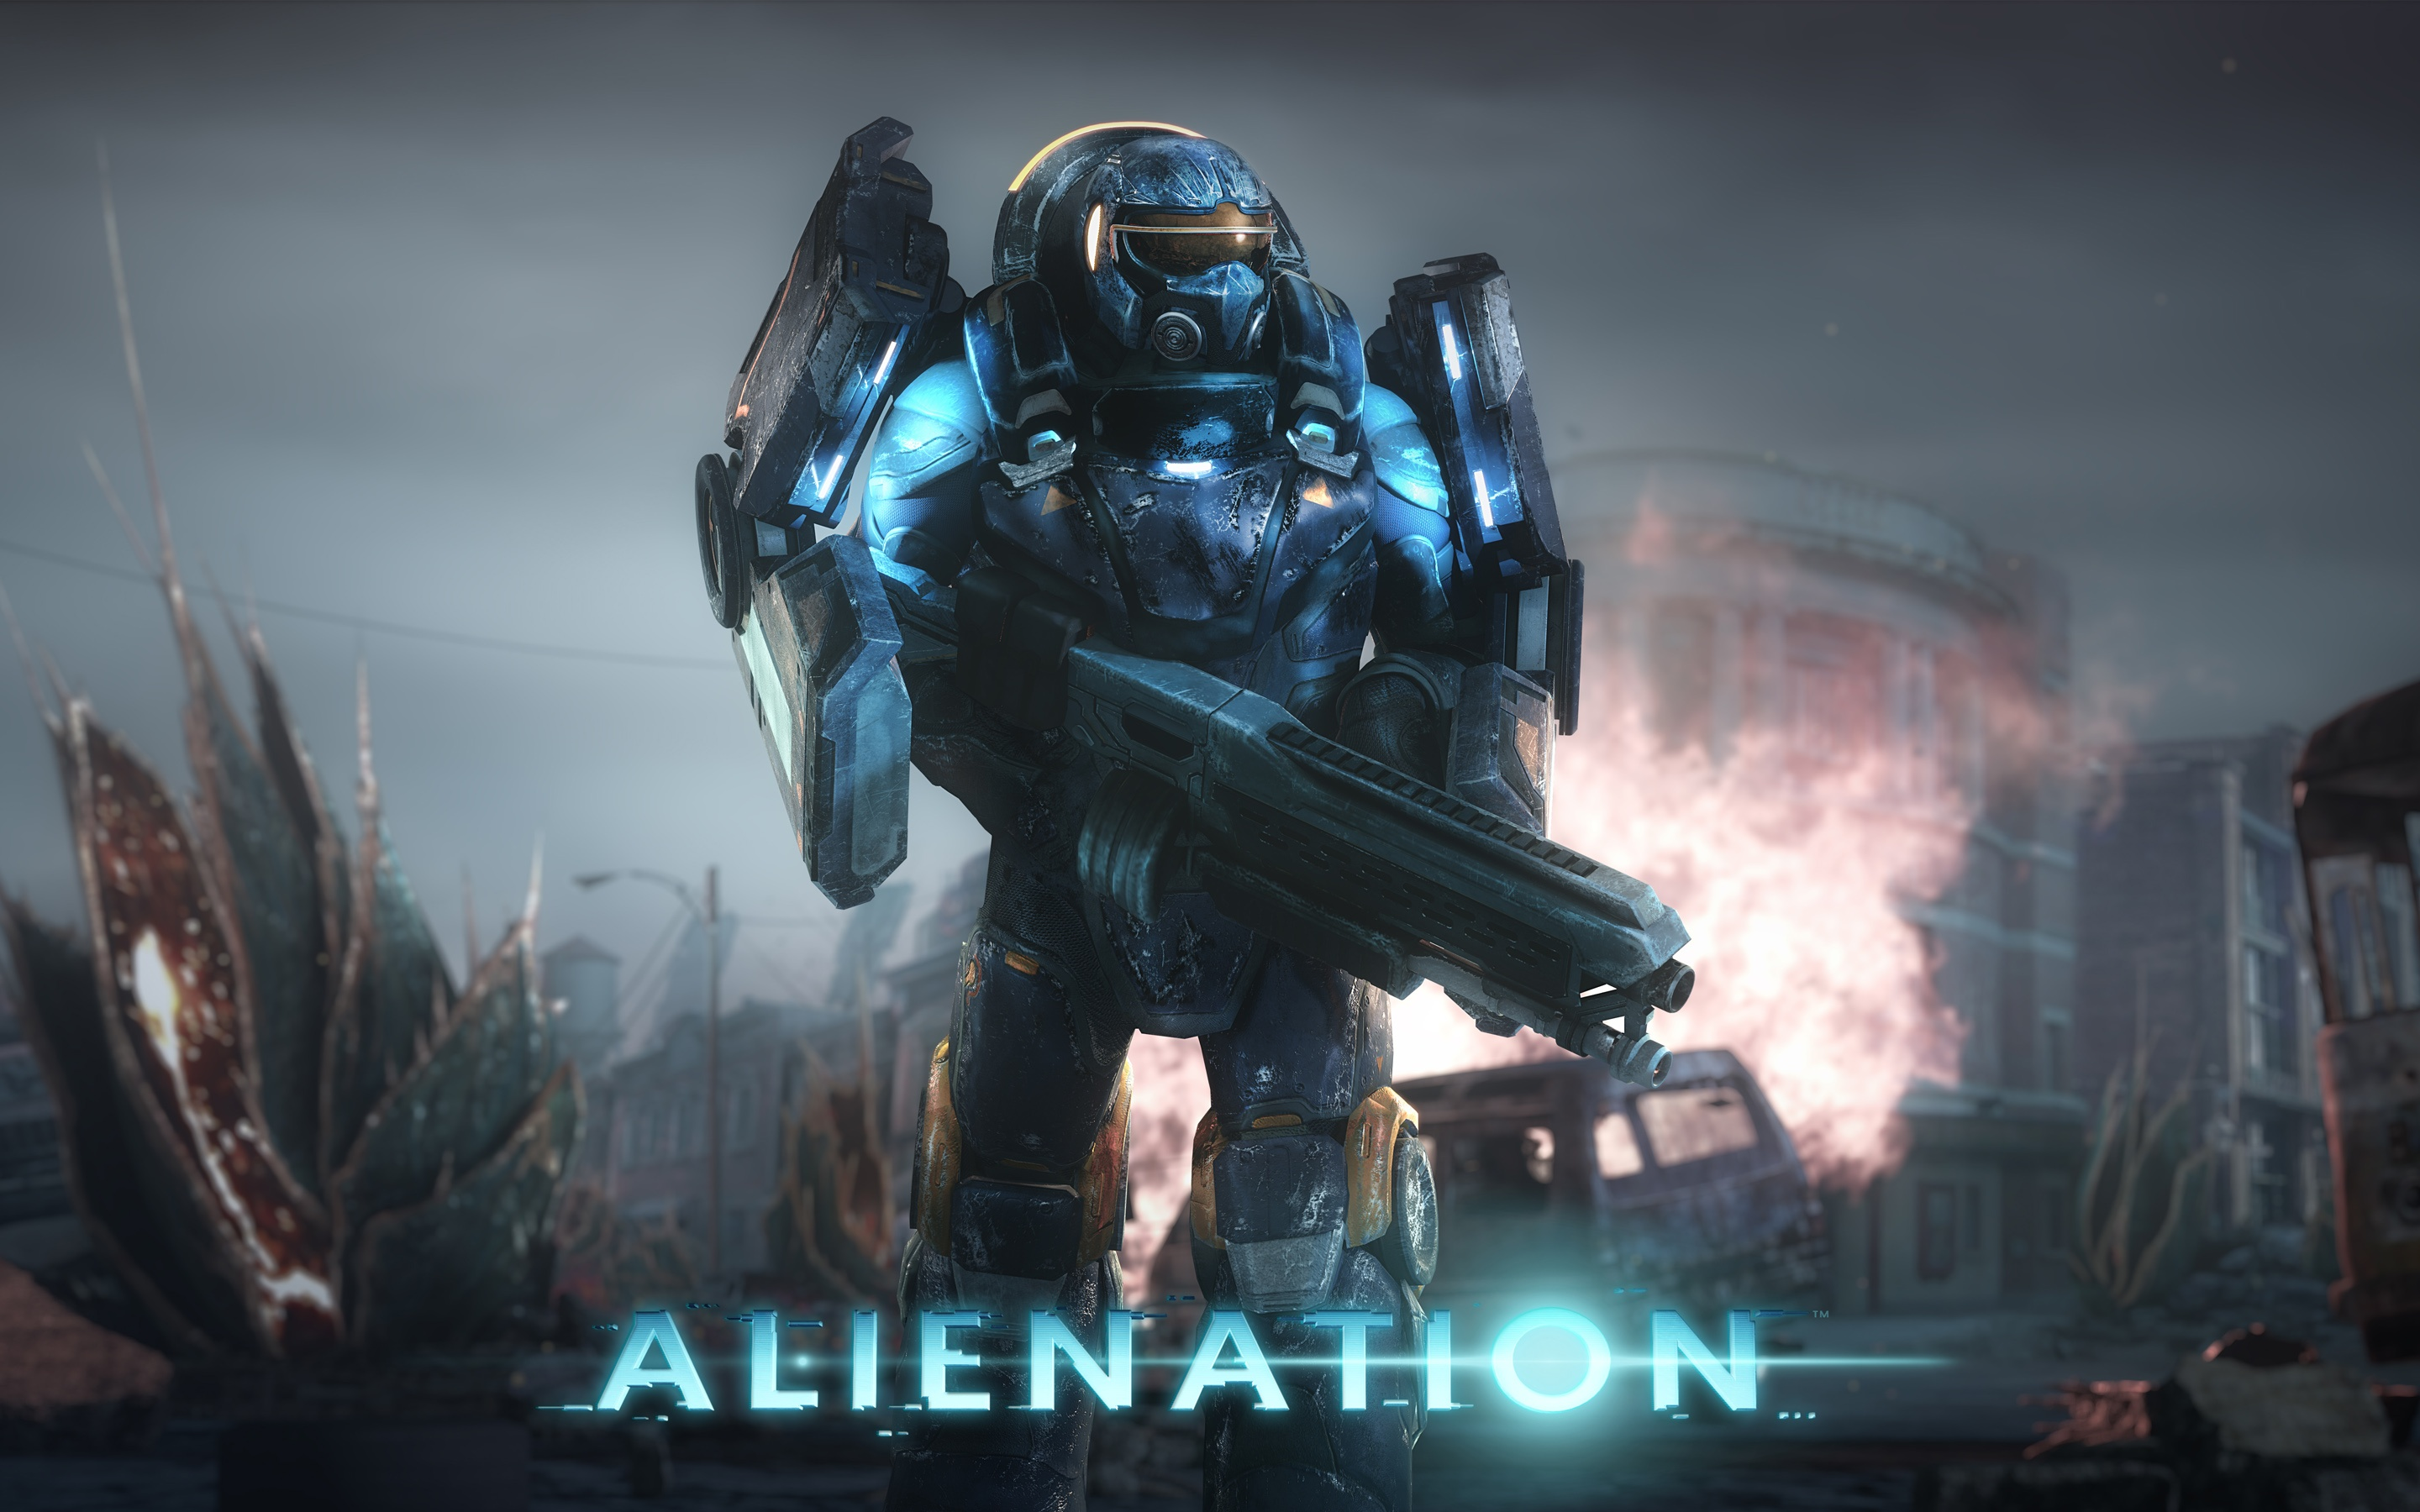 Alienation Ps4 Game 4k 8k Wallpapers In Jpg Format For Free Download